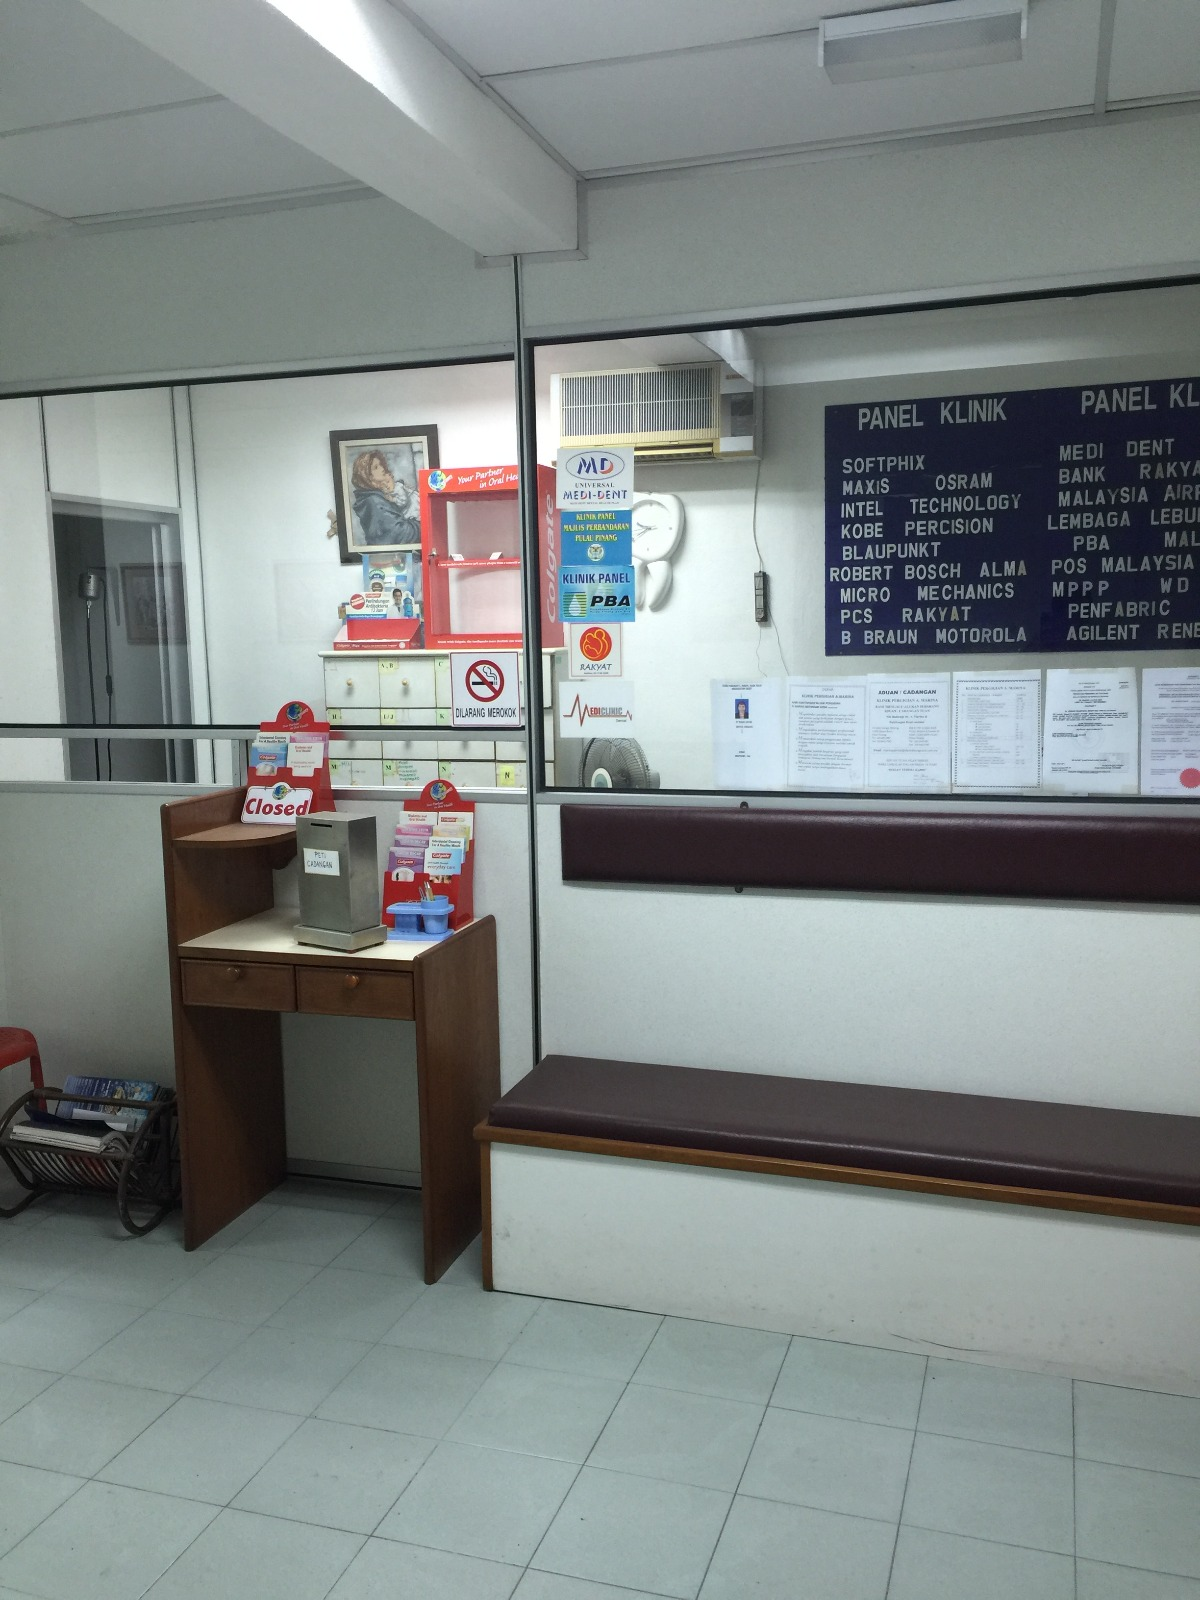 balik-pulau-clinic-for-sale-2